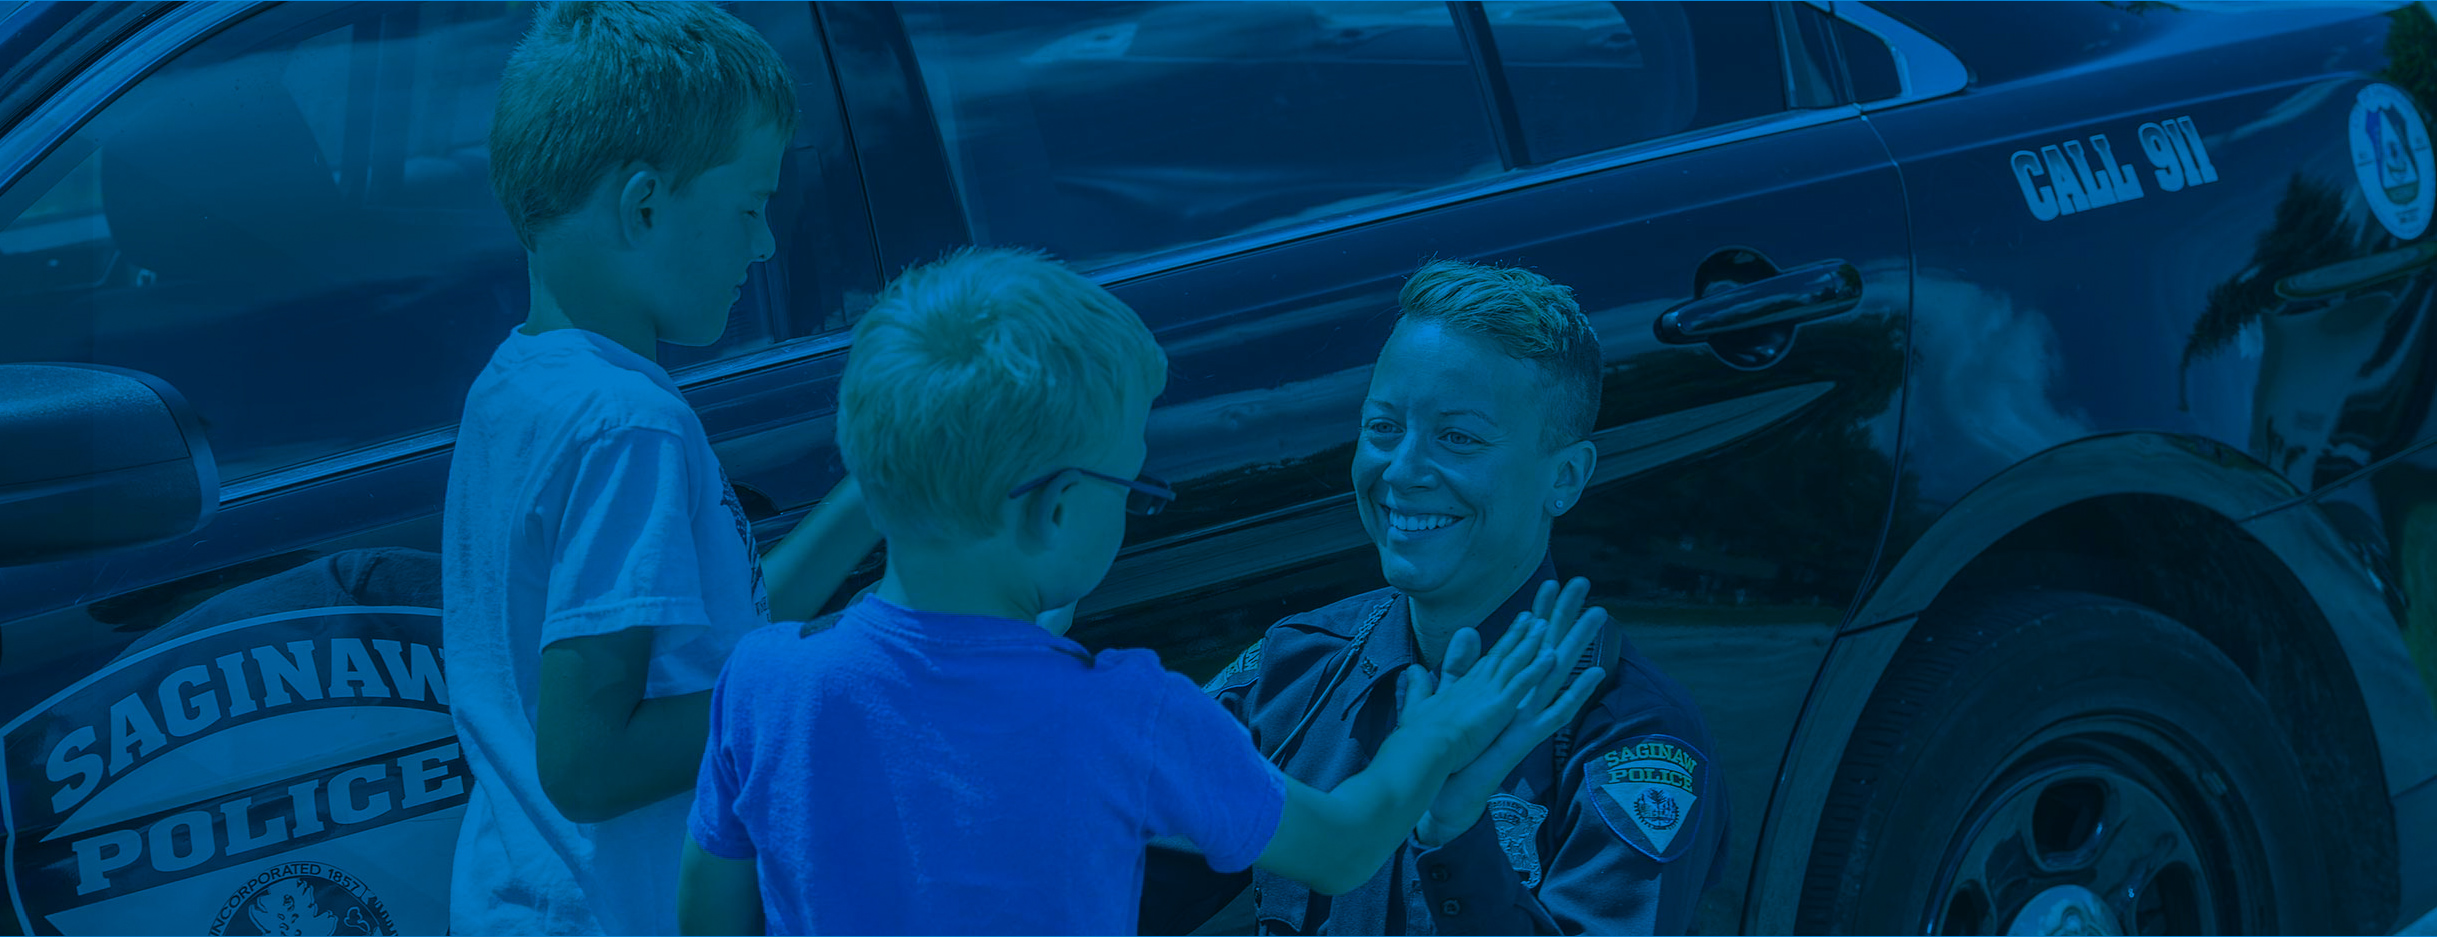 Officer Samm Buth with two children by her police vehicle.